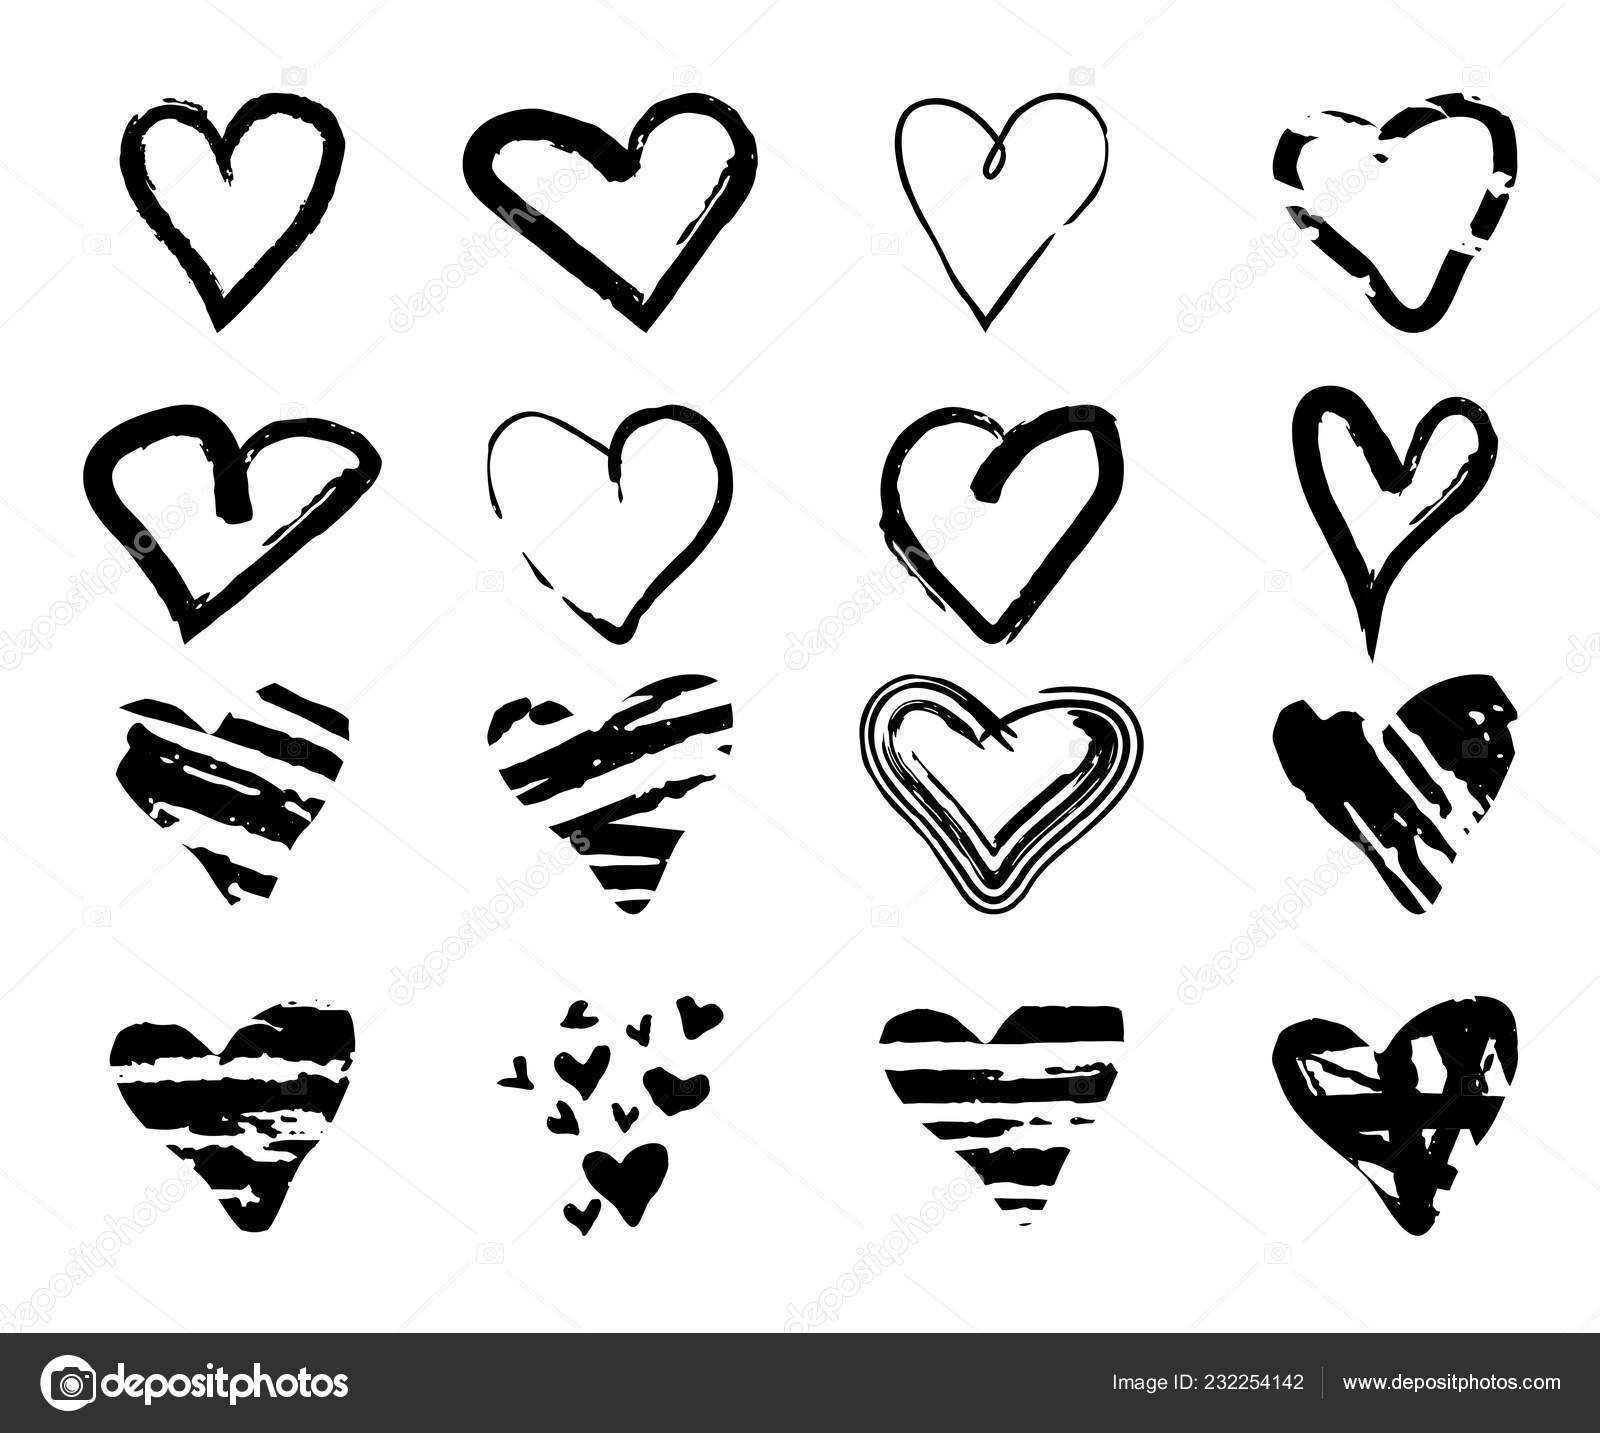 hight resolution of  drawn grunge hearts for design use black sketch elements on white background abstract brush ink marker pencil drawing vector icon stock clipart